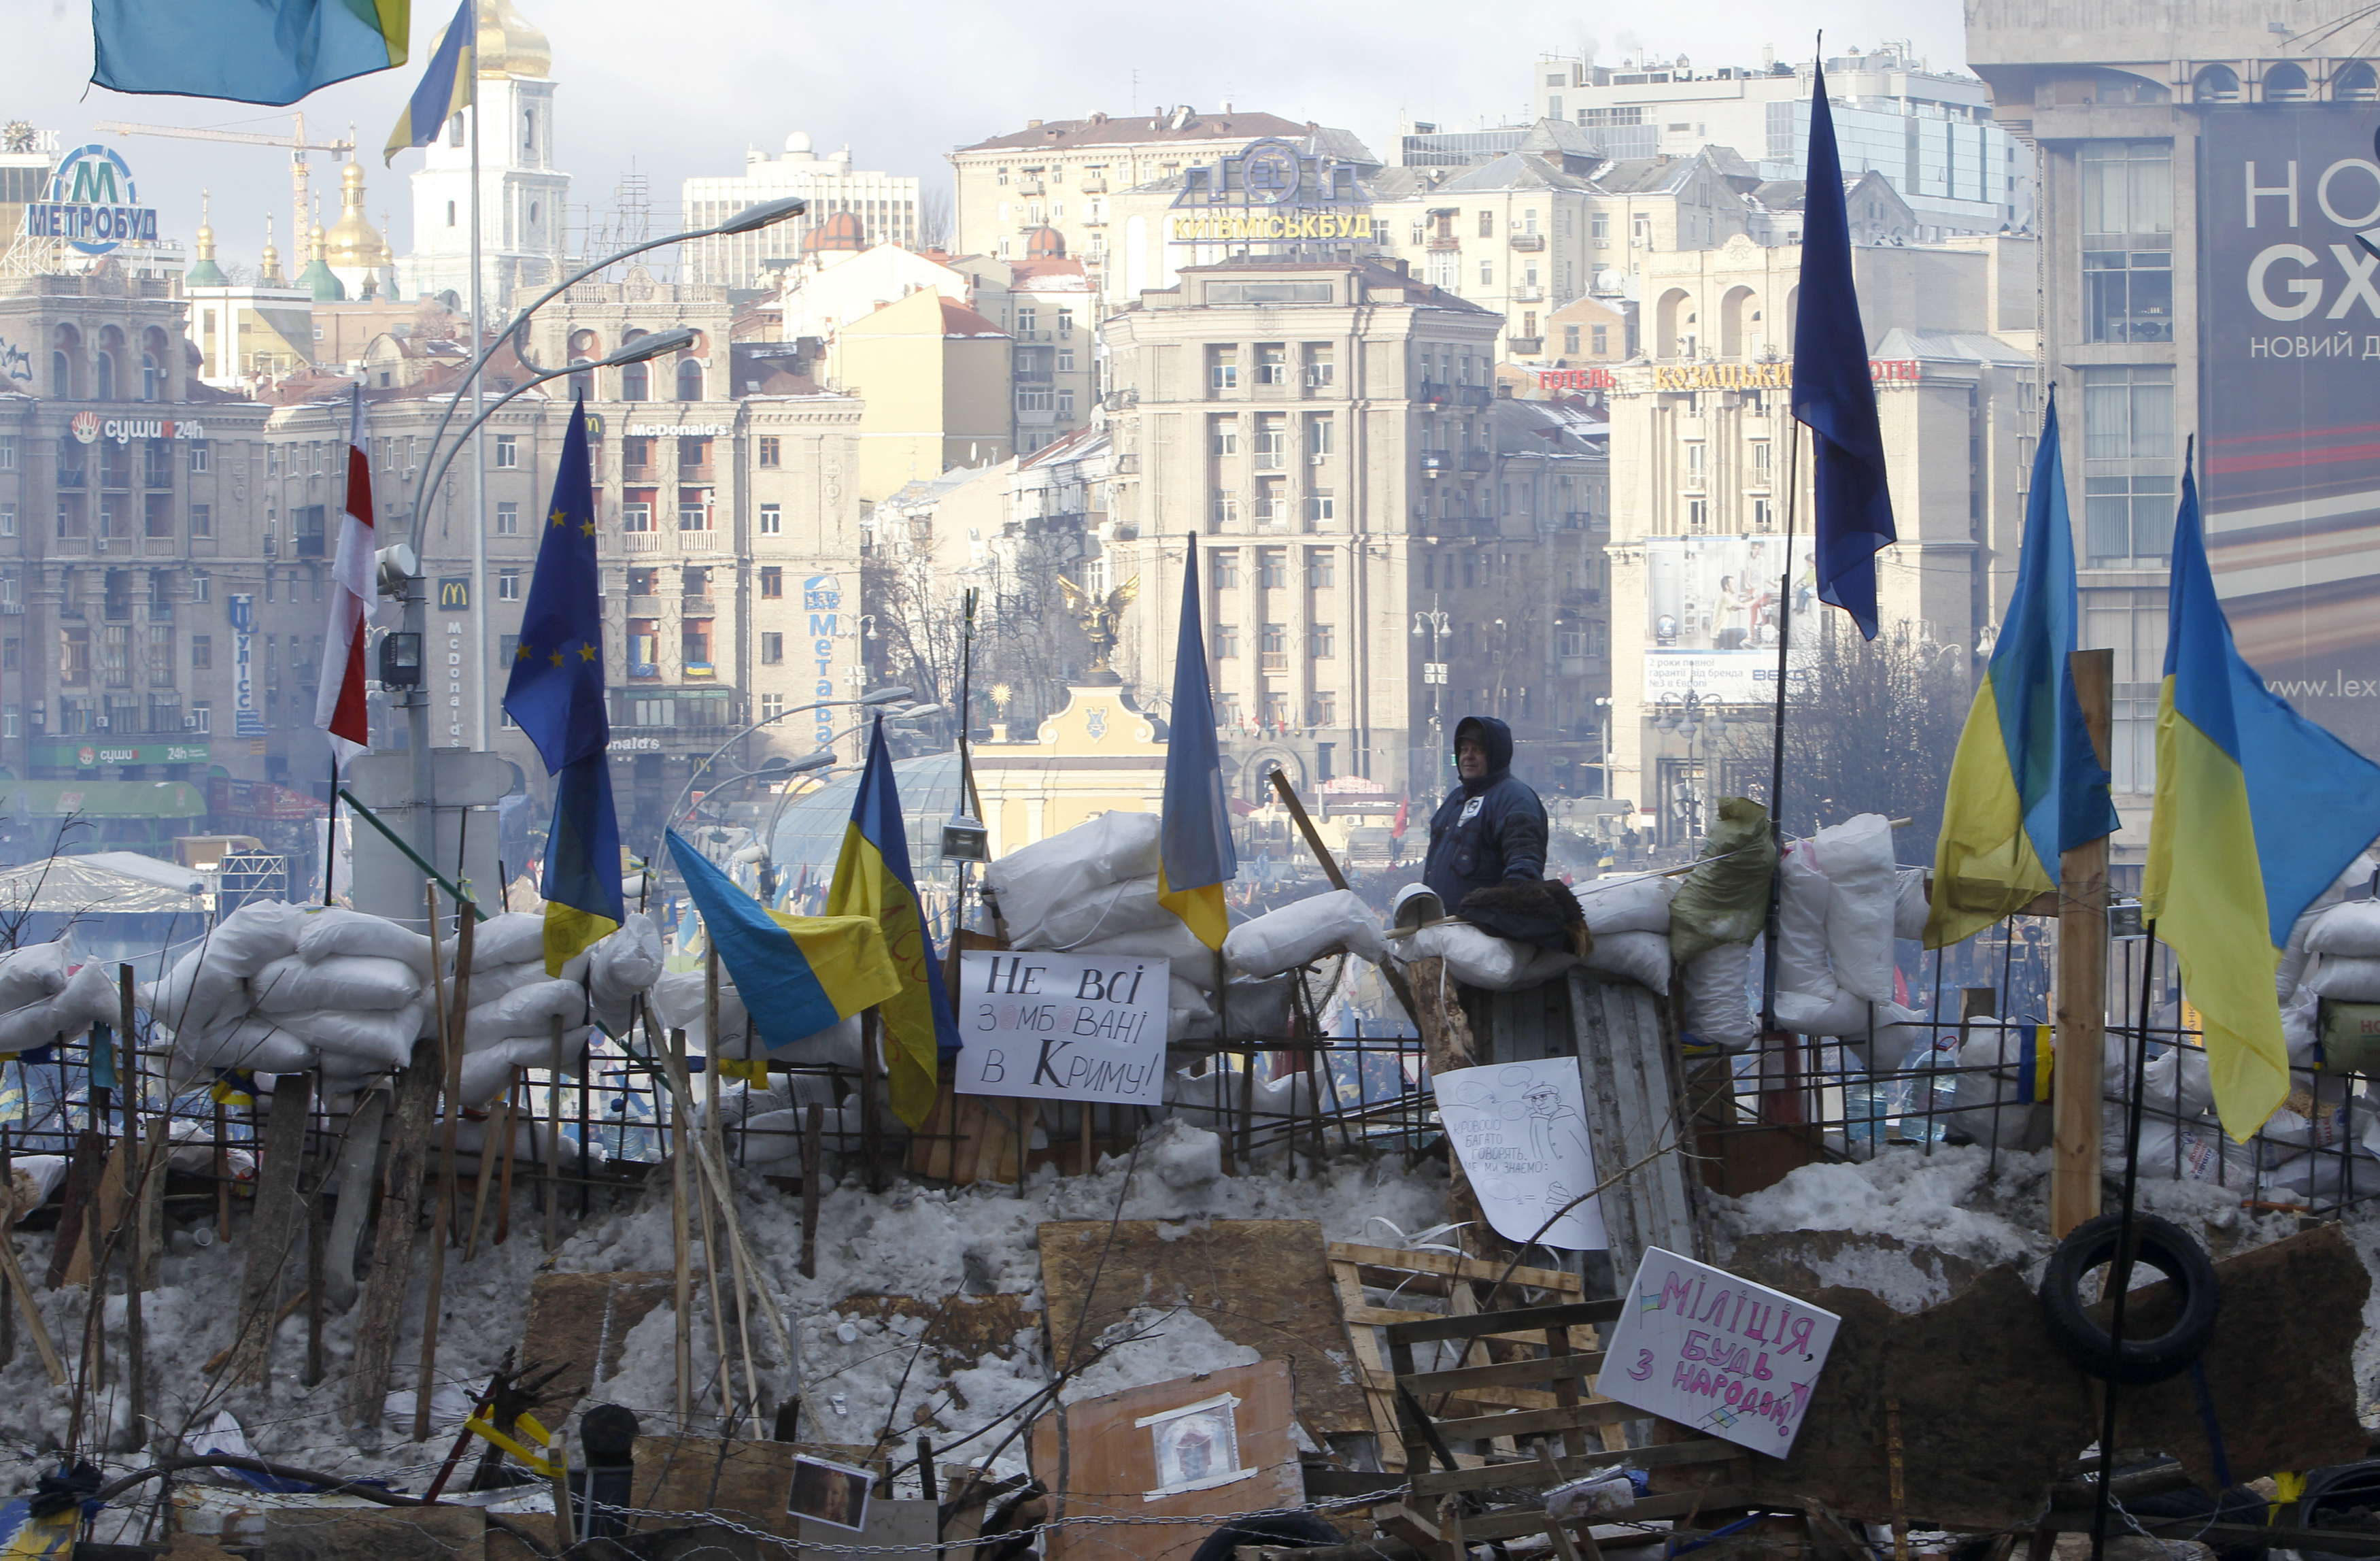 A pro-European integration protester looks out from a barricade on Independence Square in Kiev December 14, 2013. Ukrainian President Viktor Yanukovich made few concessions on Friday in crisis talks with the opposition, his first direct attempt to defuse weeks of unrest over a policy swerve to Russia away from Europe.   REUTERS/Vasily Fedosenko (UKRAINE - Tags: POLITICS CIVIL UNREST)